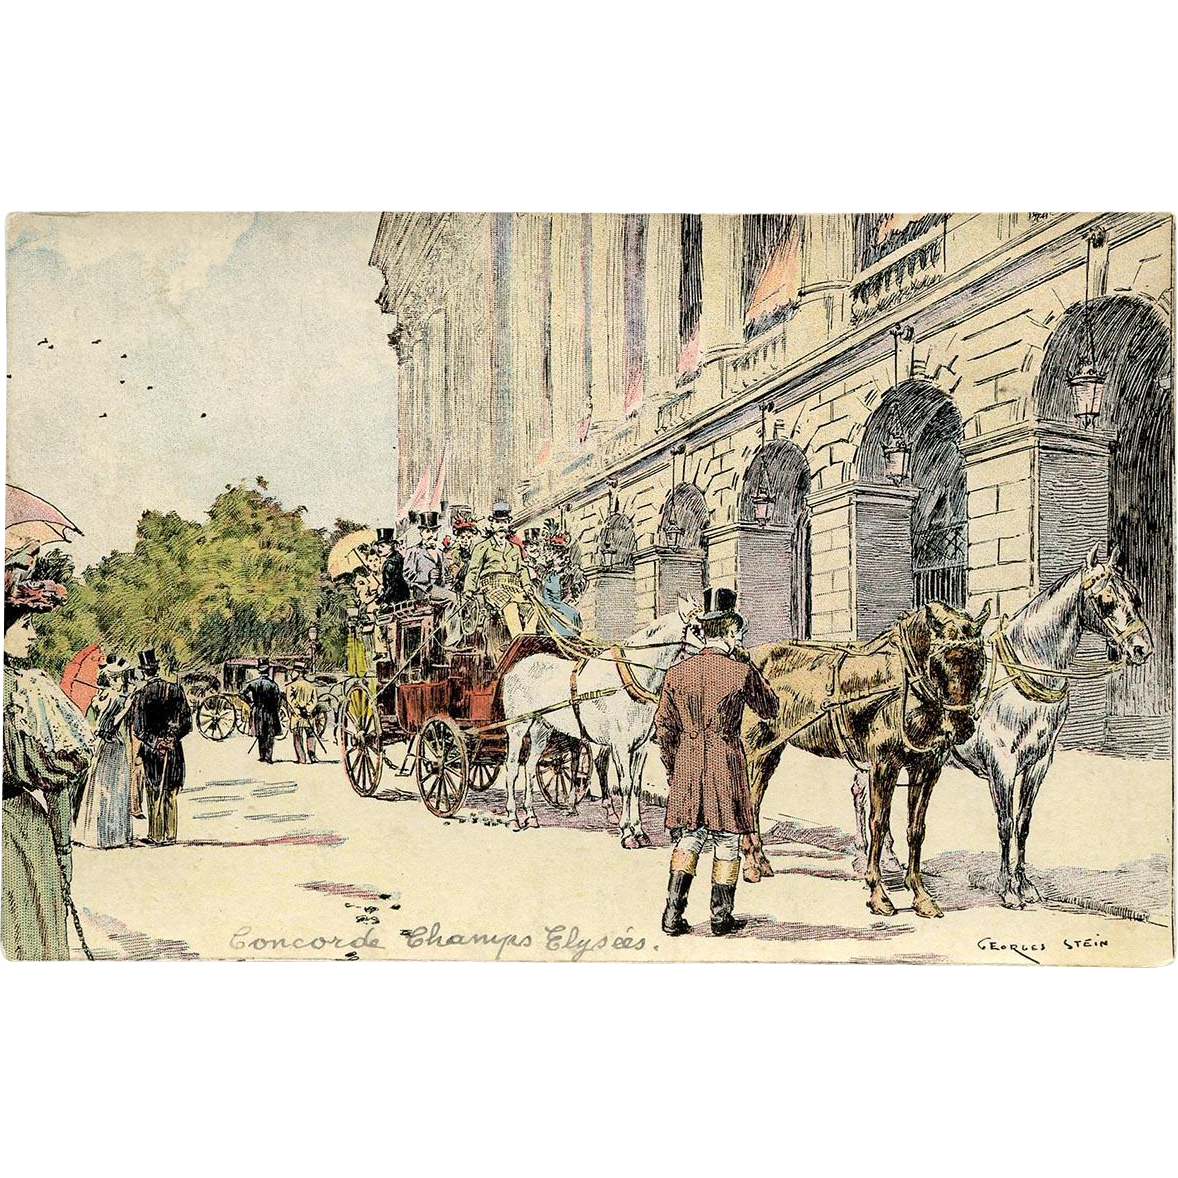 Rare Georges Stein Antique Postcard 1897 Paris Champs-Élysées Possibly Hand Made